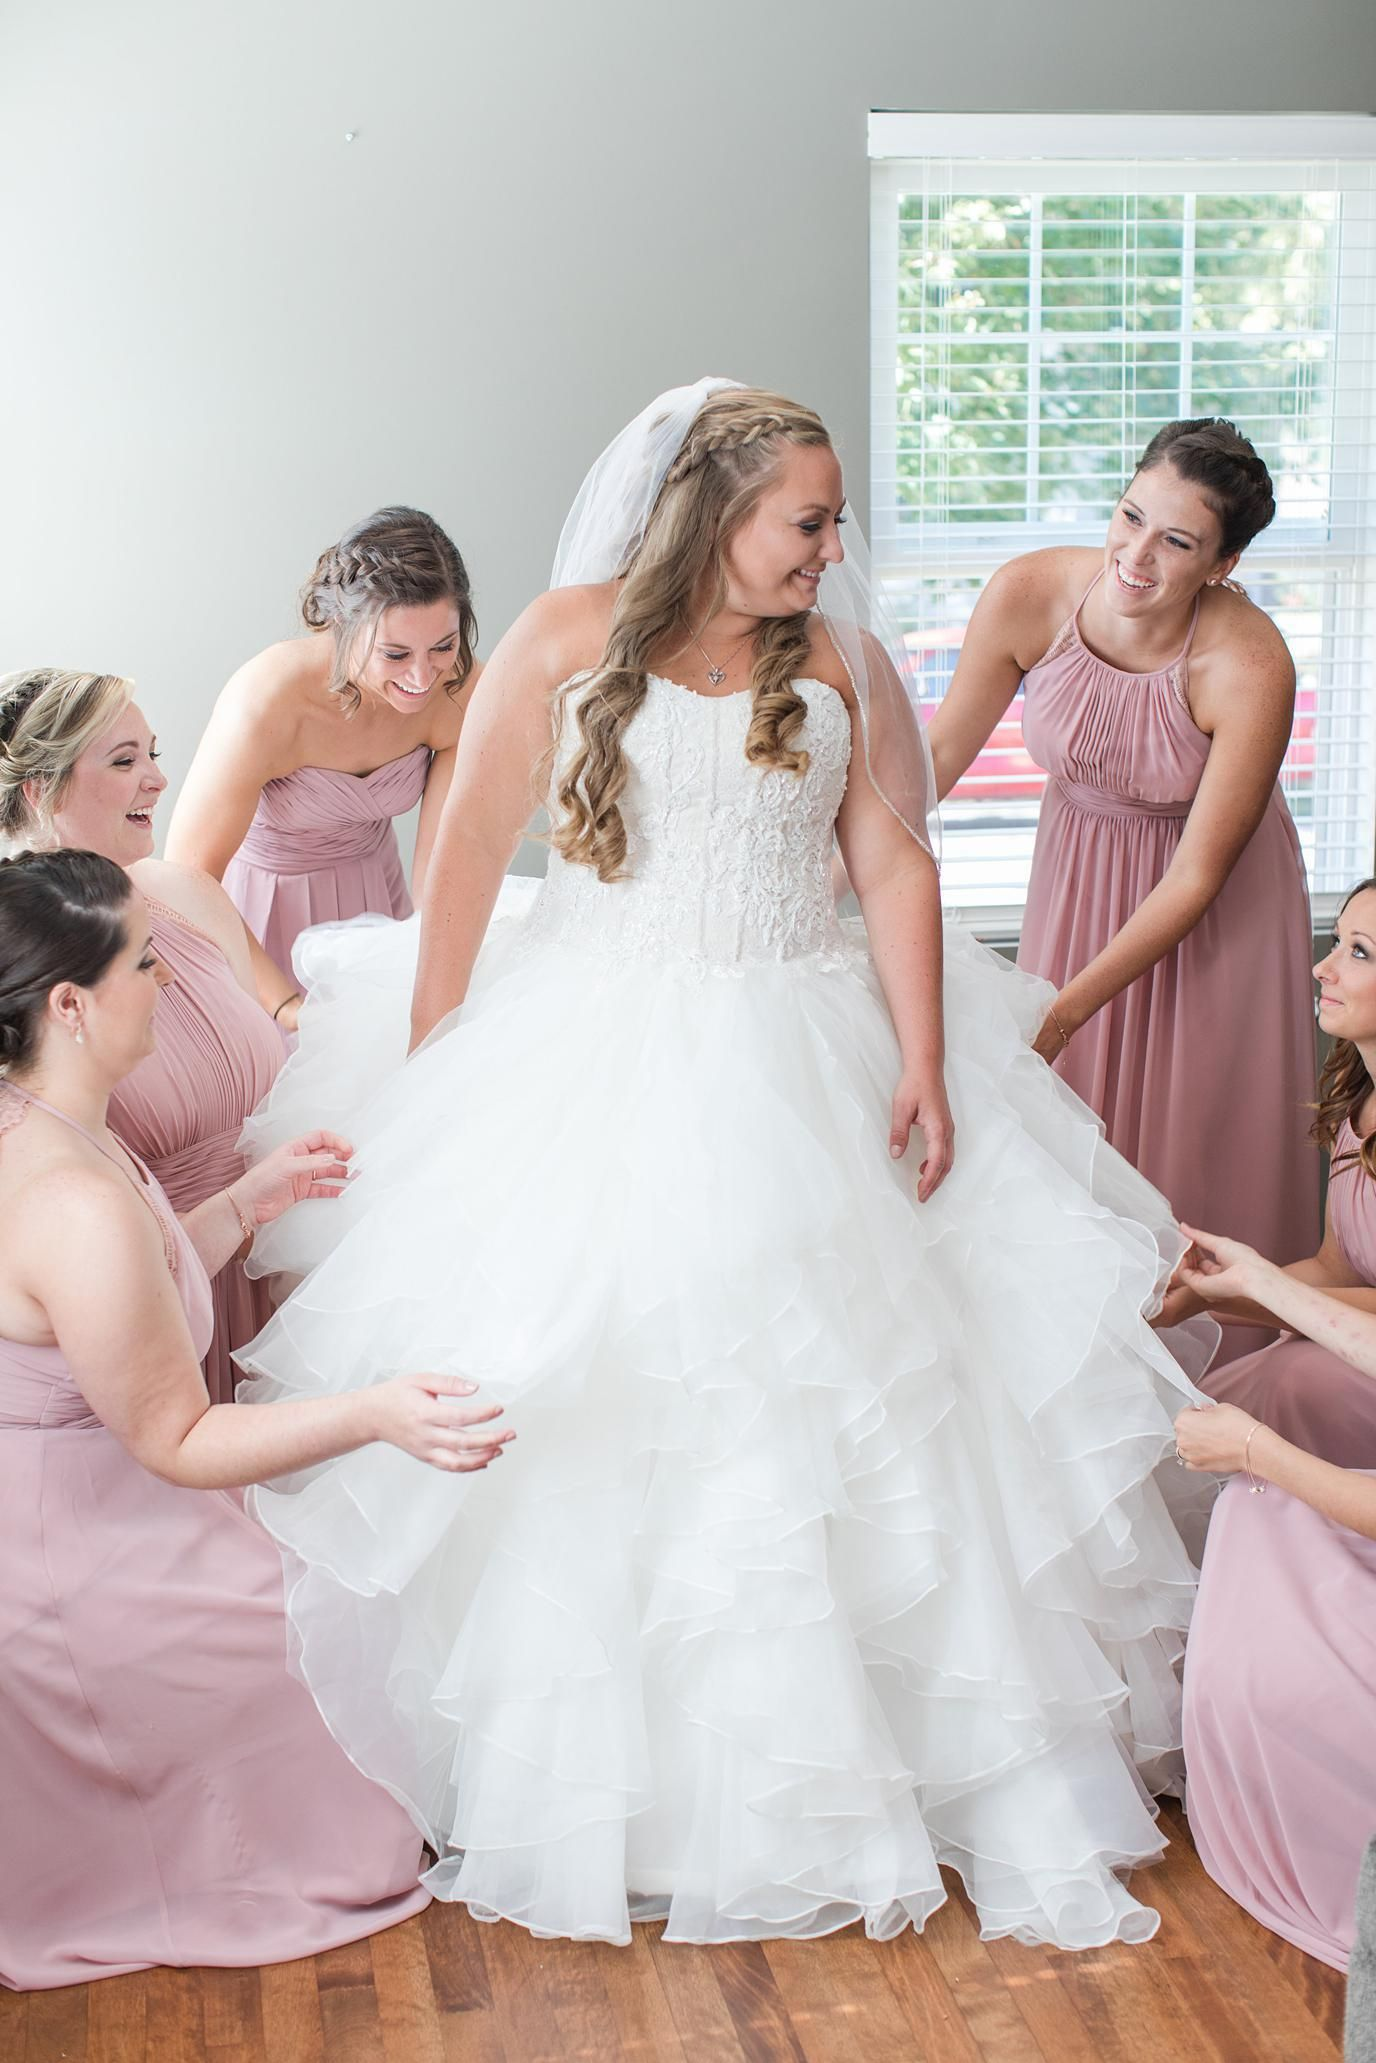 Dusty Rose And Navy Wedding At Glenwoo Golf Club In Glenwood Illinois Blush Bridesmaid Dresses Ball Gown Dress By Megan Goggins Photography